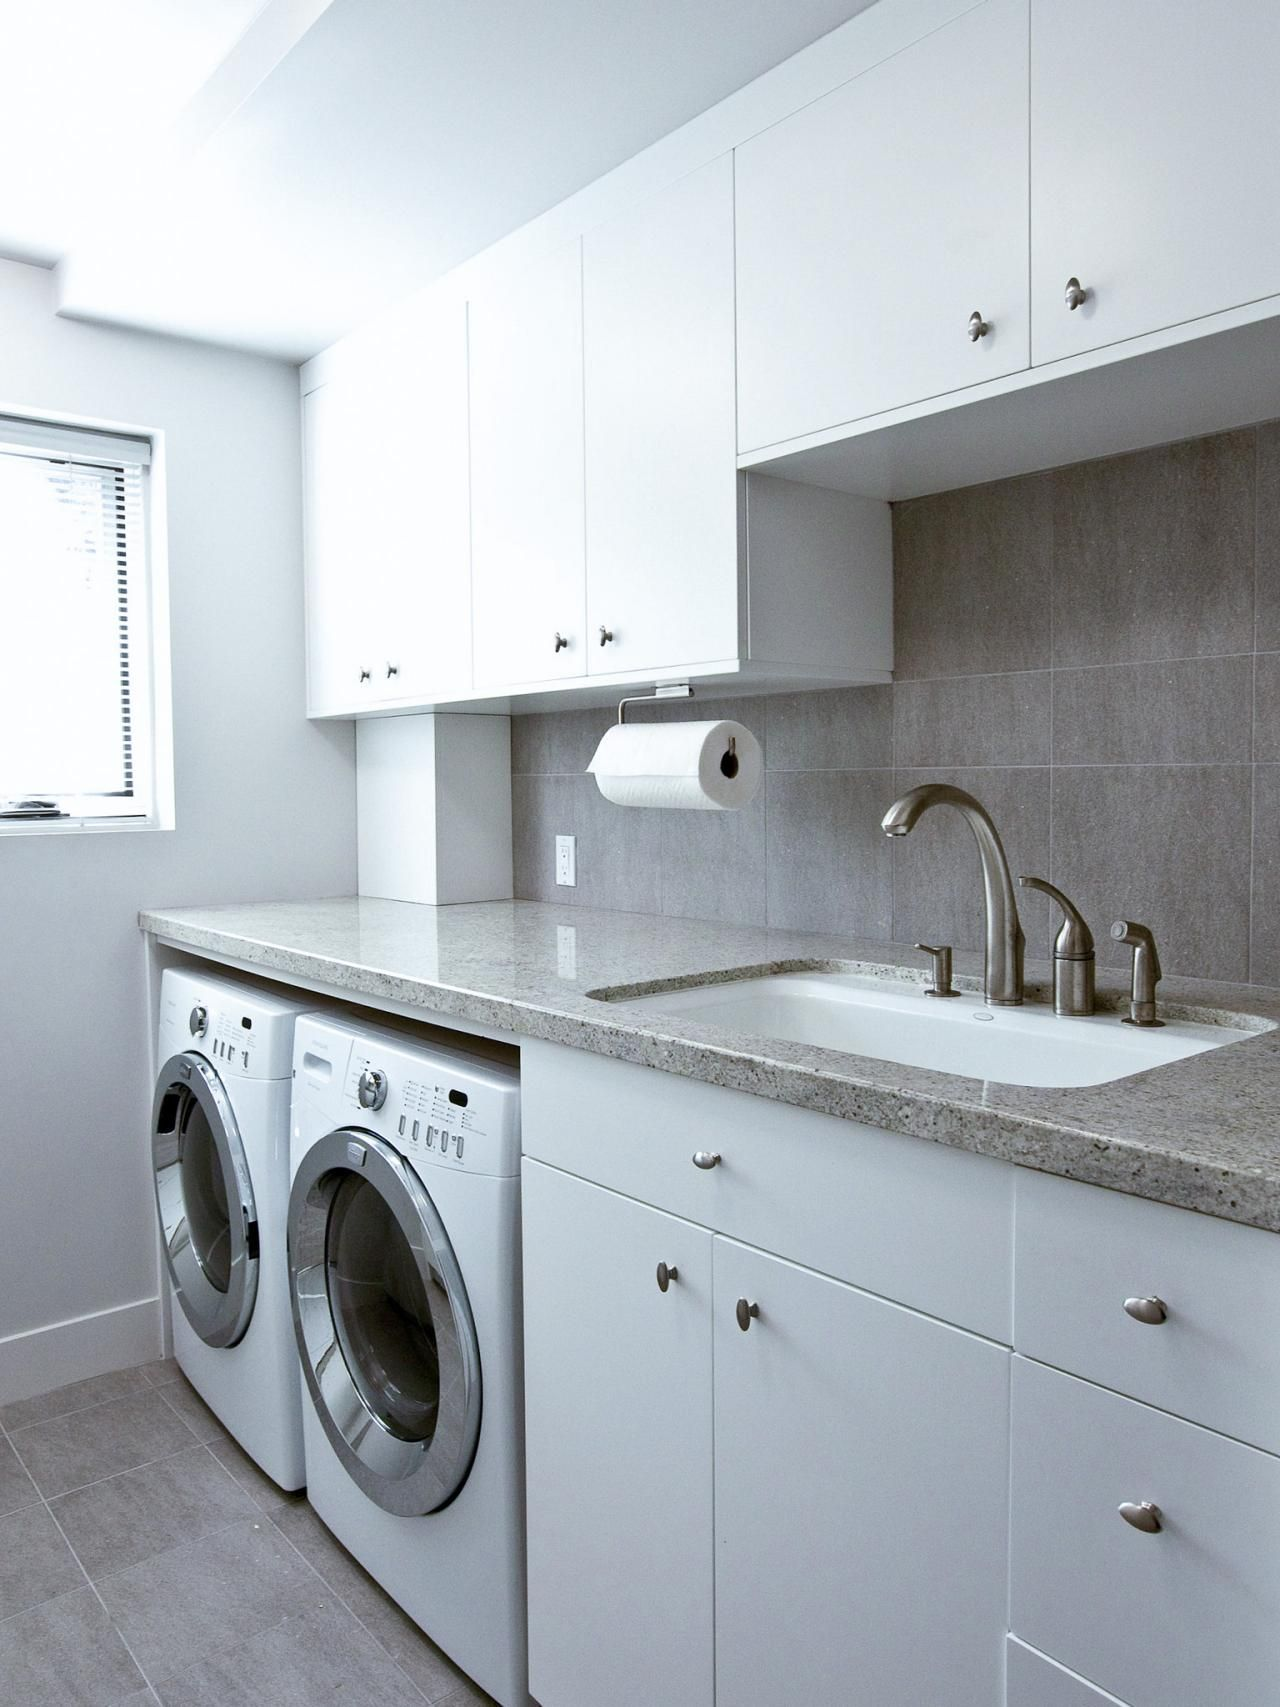 Modern Laundry Room Images This Modern Laundry Room Features A Folding Counter Sink And